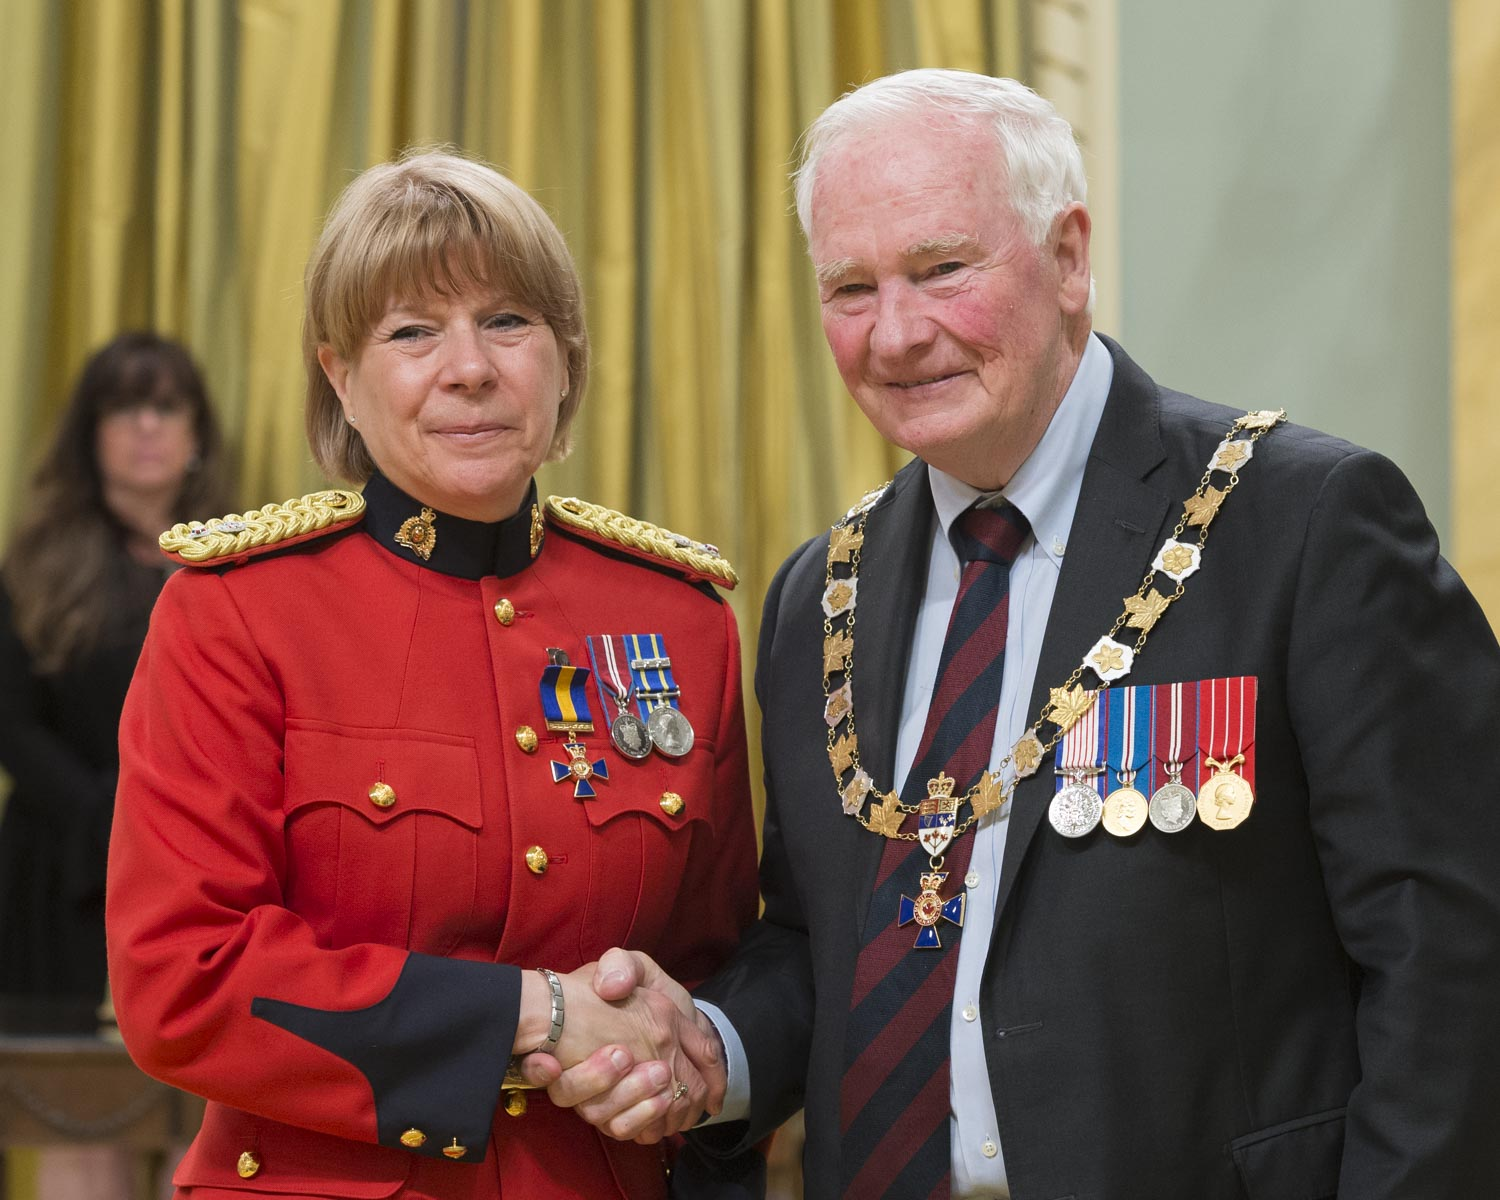 His Excellency presented the Order at the Officer level to Superintendent Martine Fontaine, O.O.M., Royal Canadian Mounted Police, Westmount, Quebec.